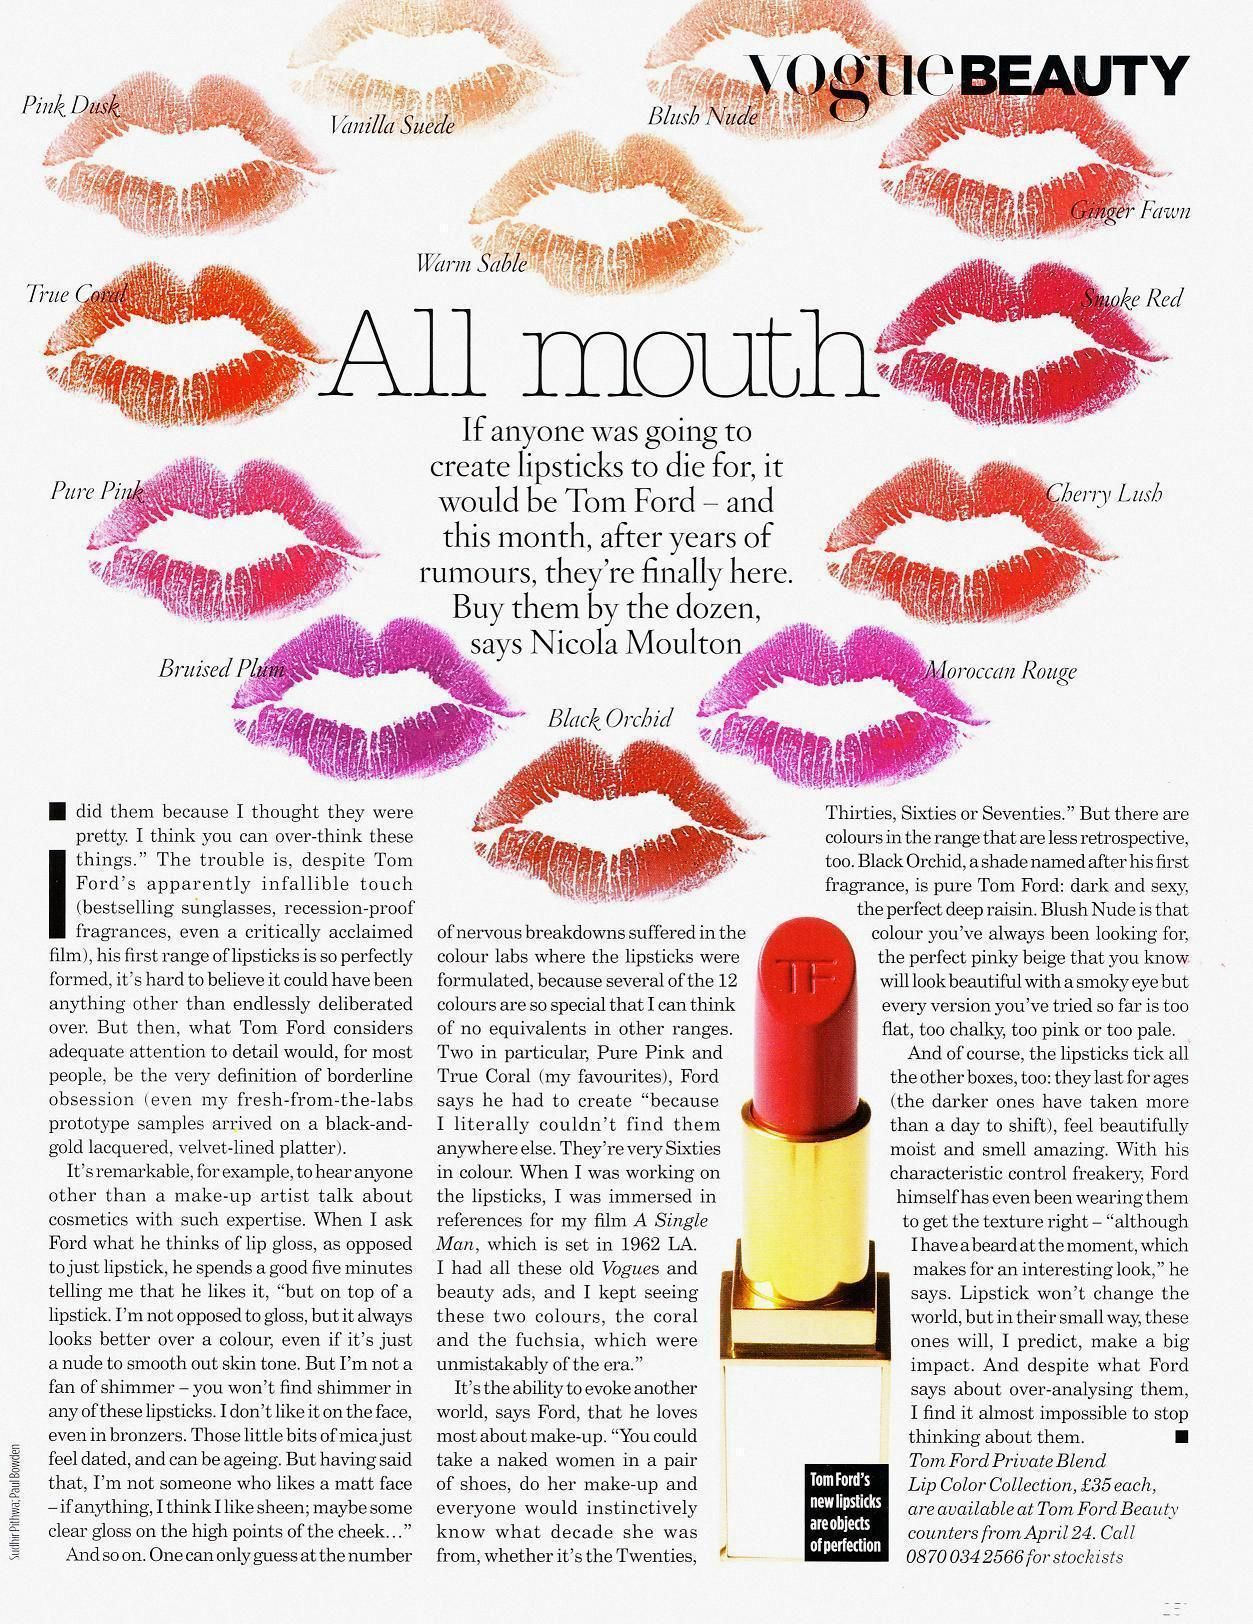 """"""" All Mouth """" : Tom Ford lipstick blot story shot by Sudhir Pithwa for UK VOGUE 2010 [my scan]."""